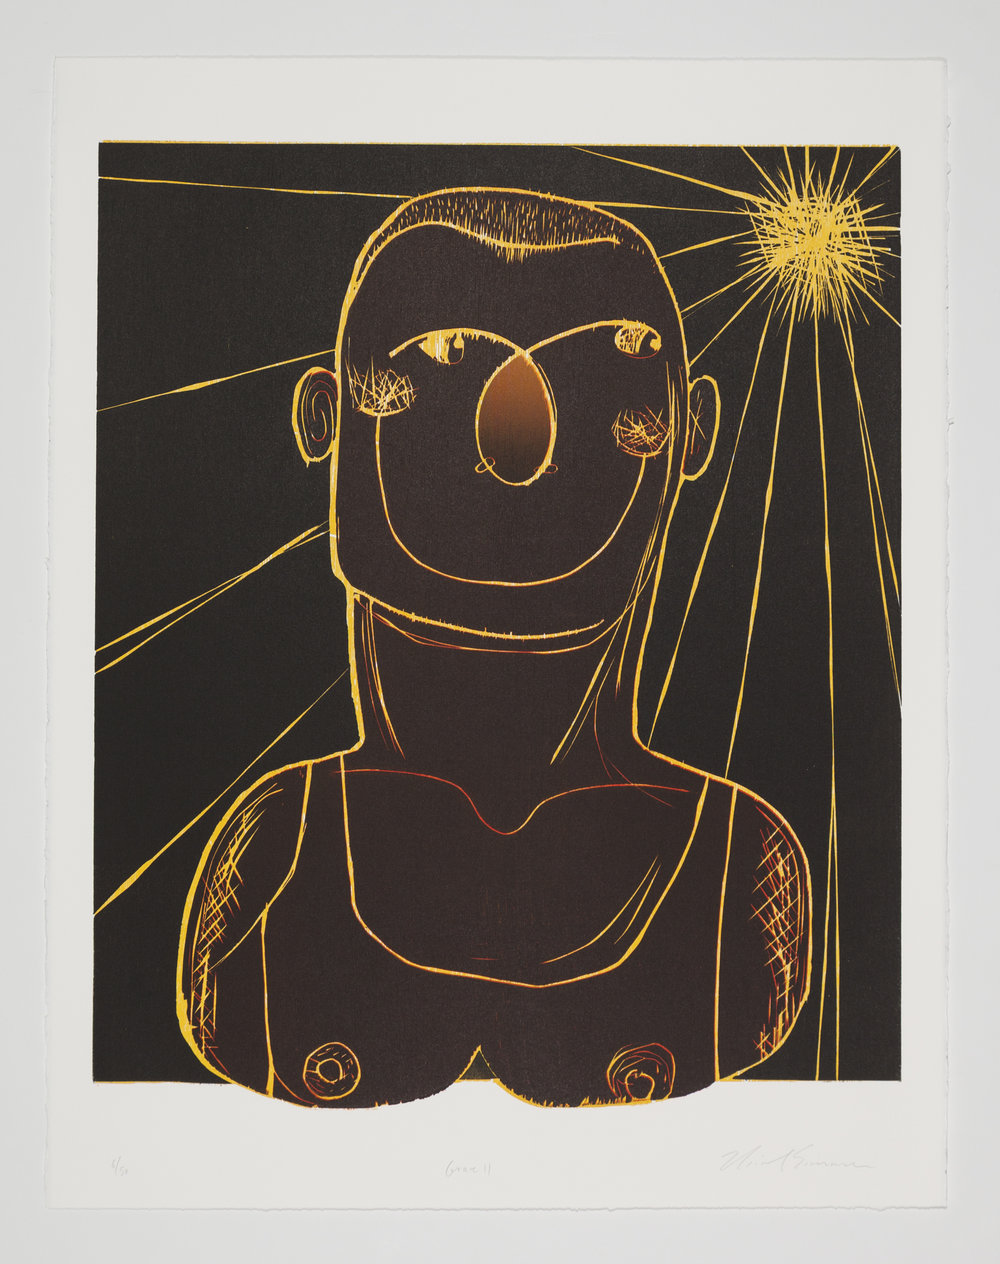 Grace (II) , 2015 Woodcut Image size: 23.75 x 20 inches Paper size: 28.5 x 22.75 inches Edition of 50